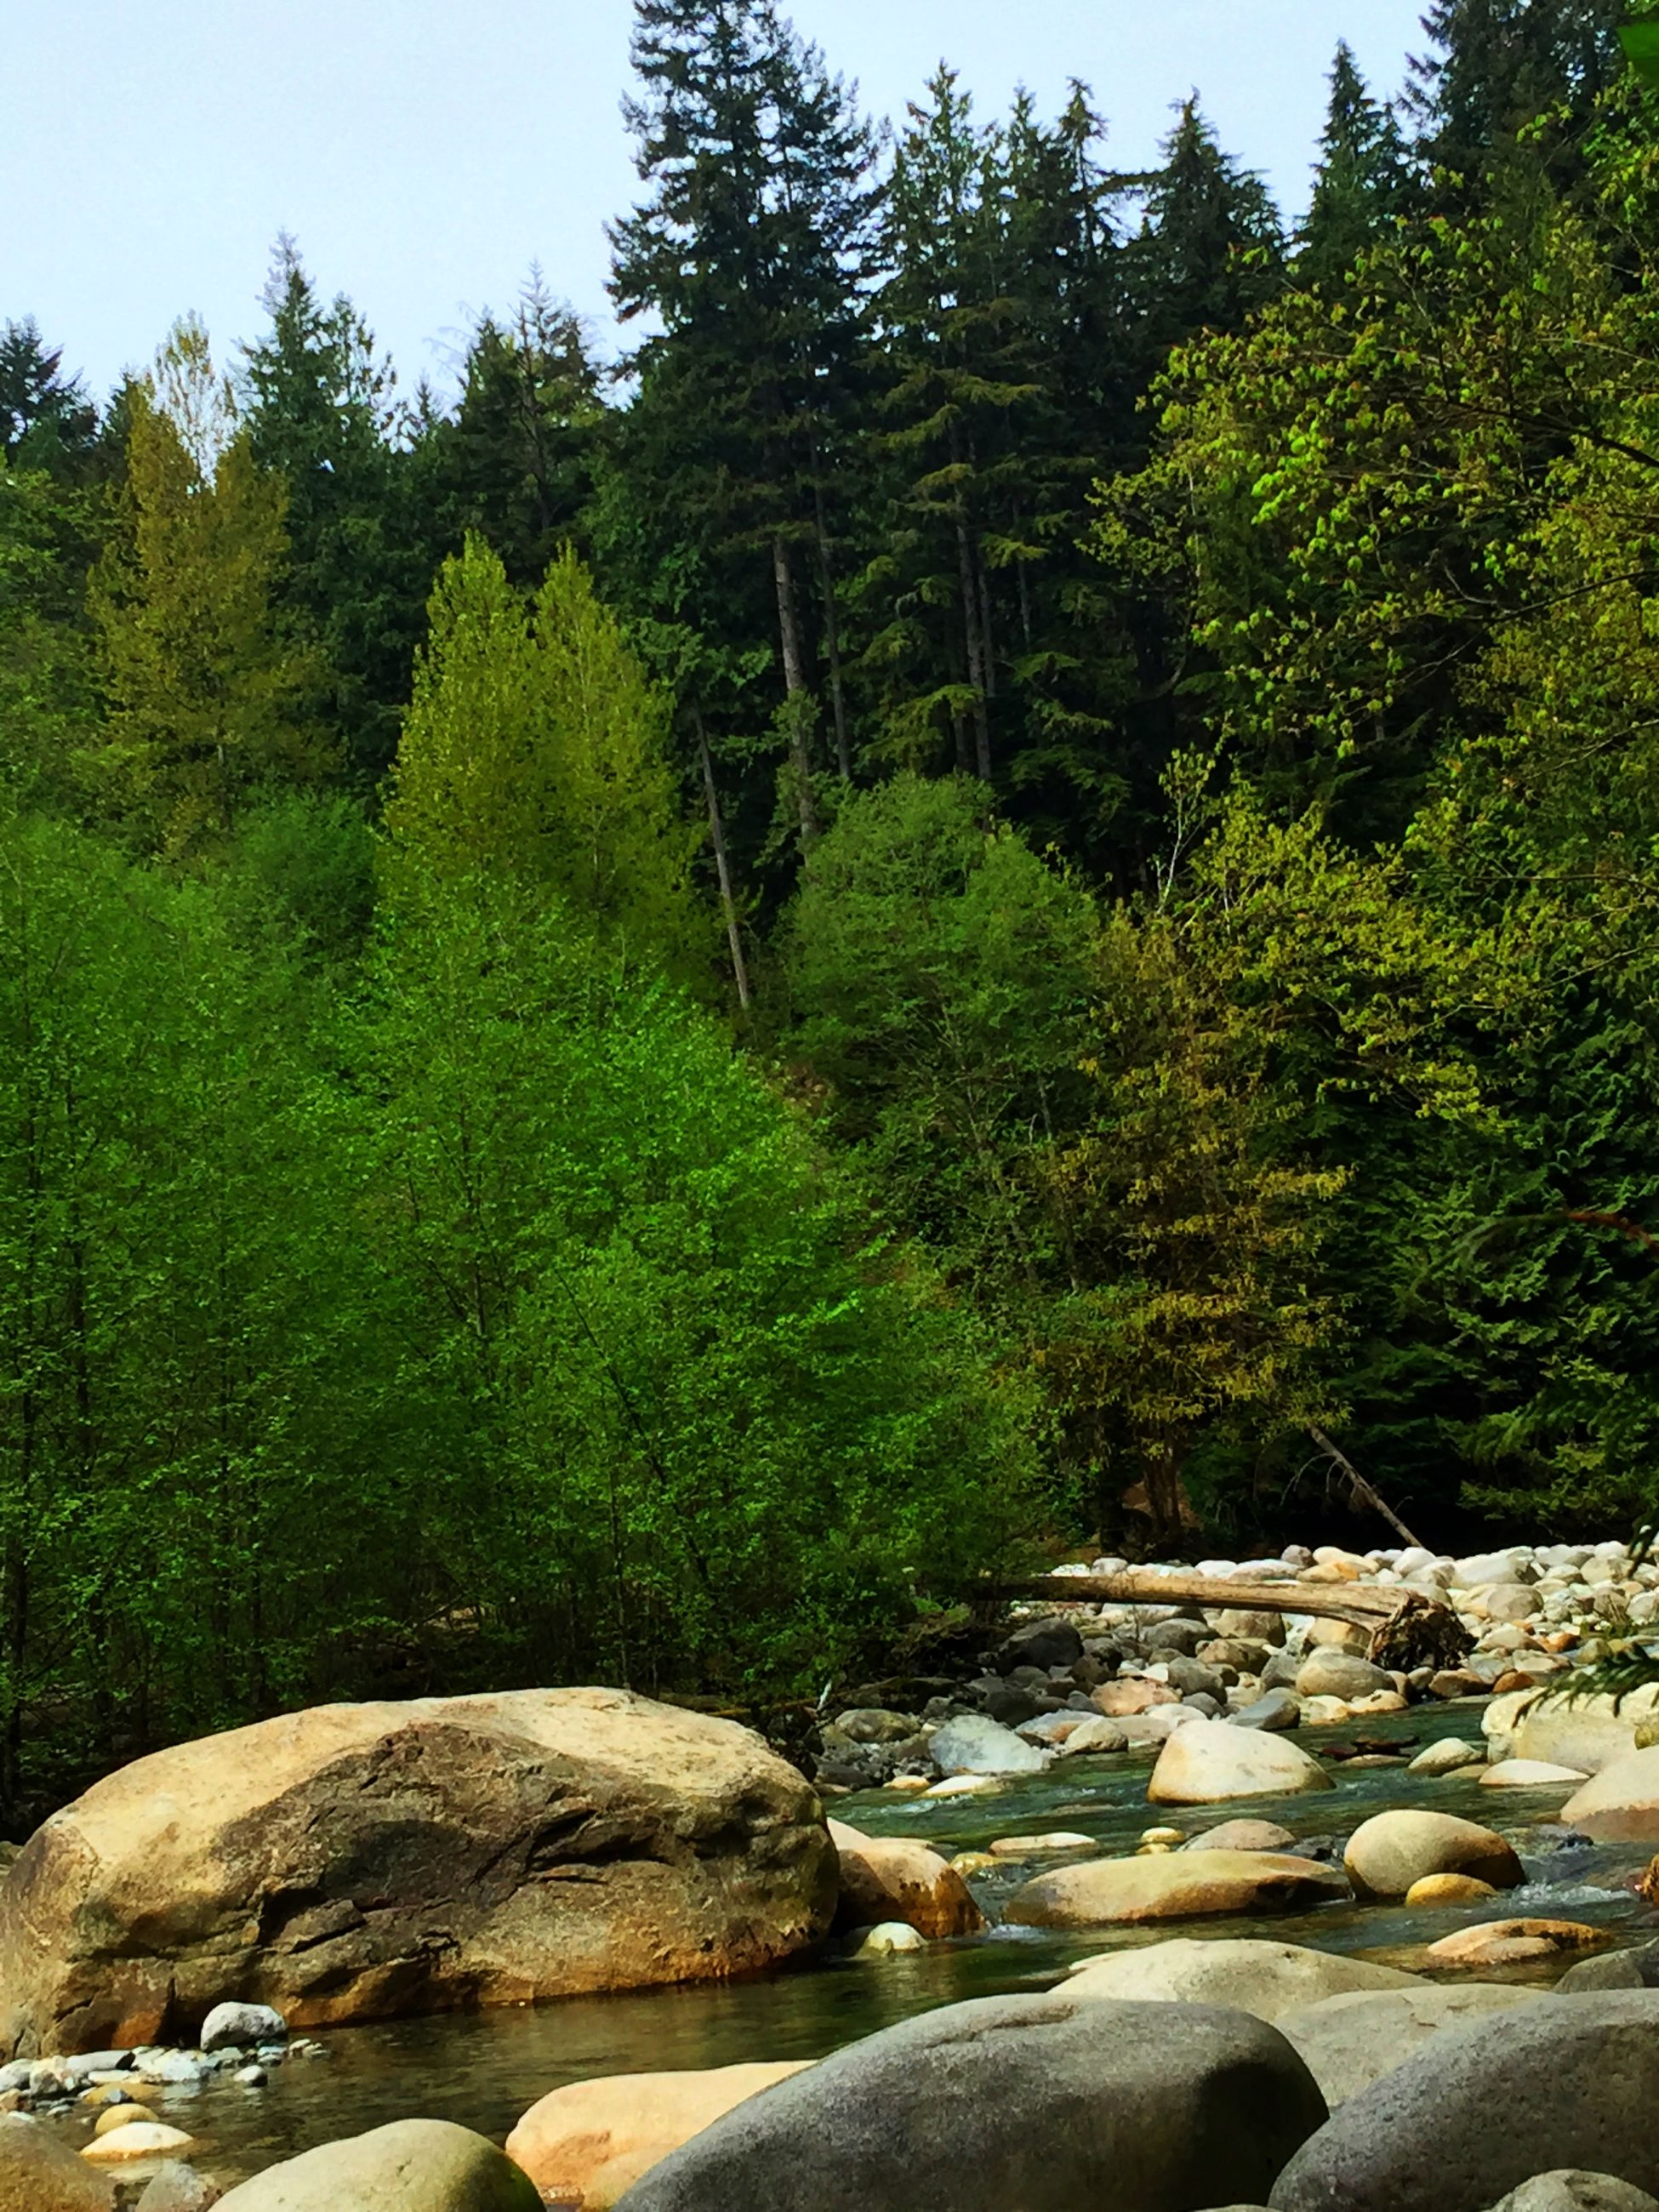 tree, tranquility, tranquil scene, green color, rock - object, nature, scenics, beauty in nature, forest, water, stream, growth, non-urban scene, landscape, plant, day, stone - object, river, lush foliage, idyllic